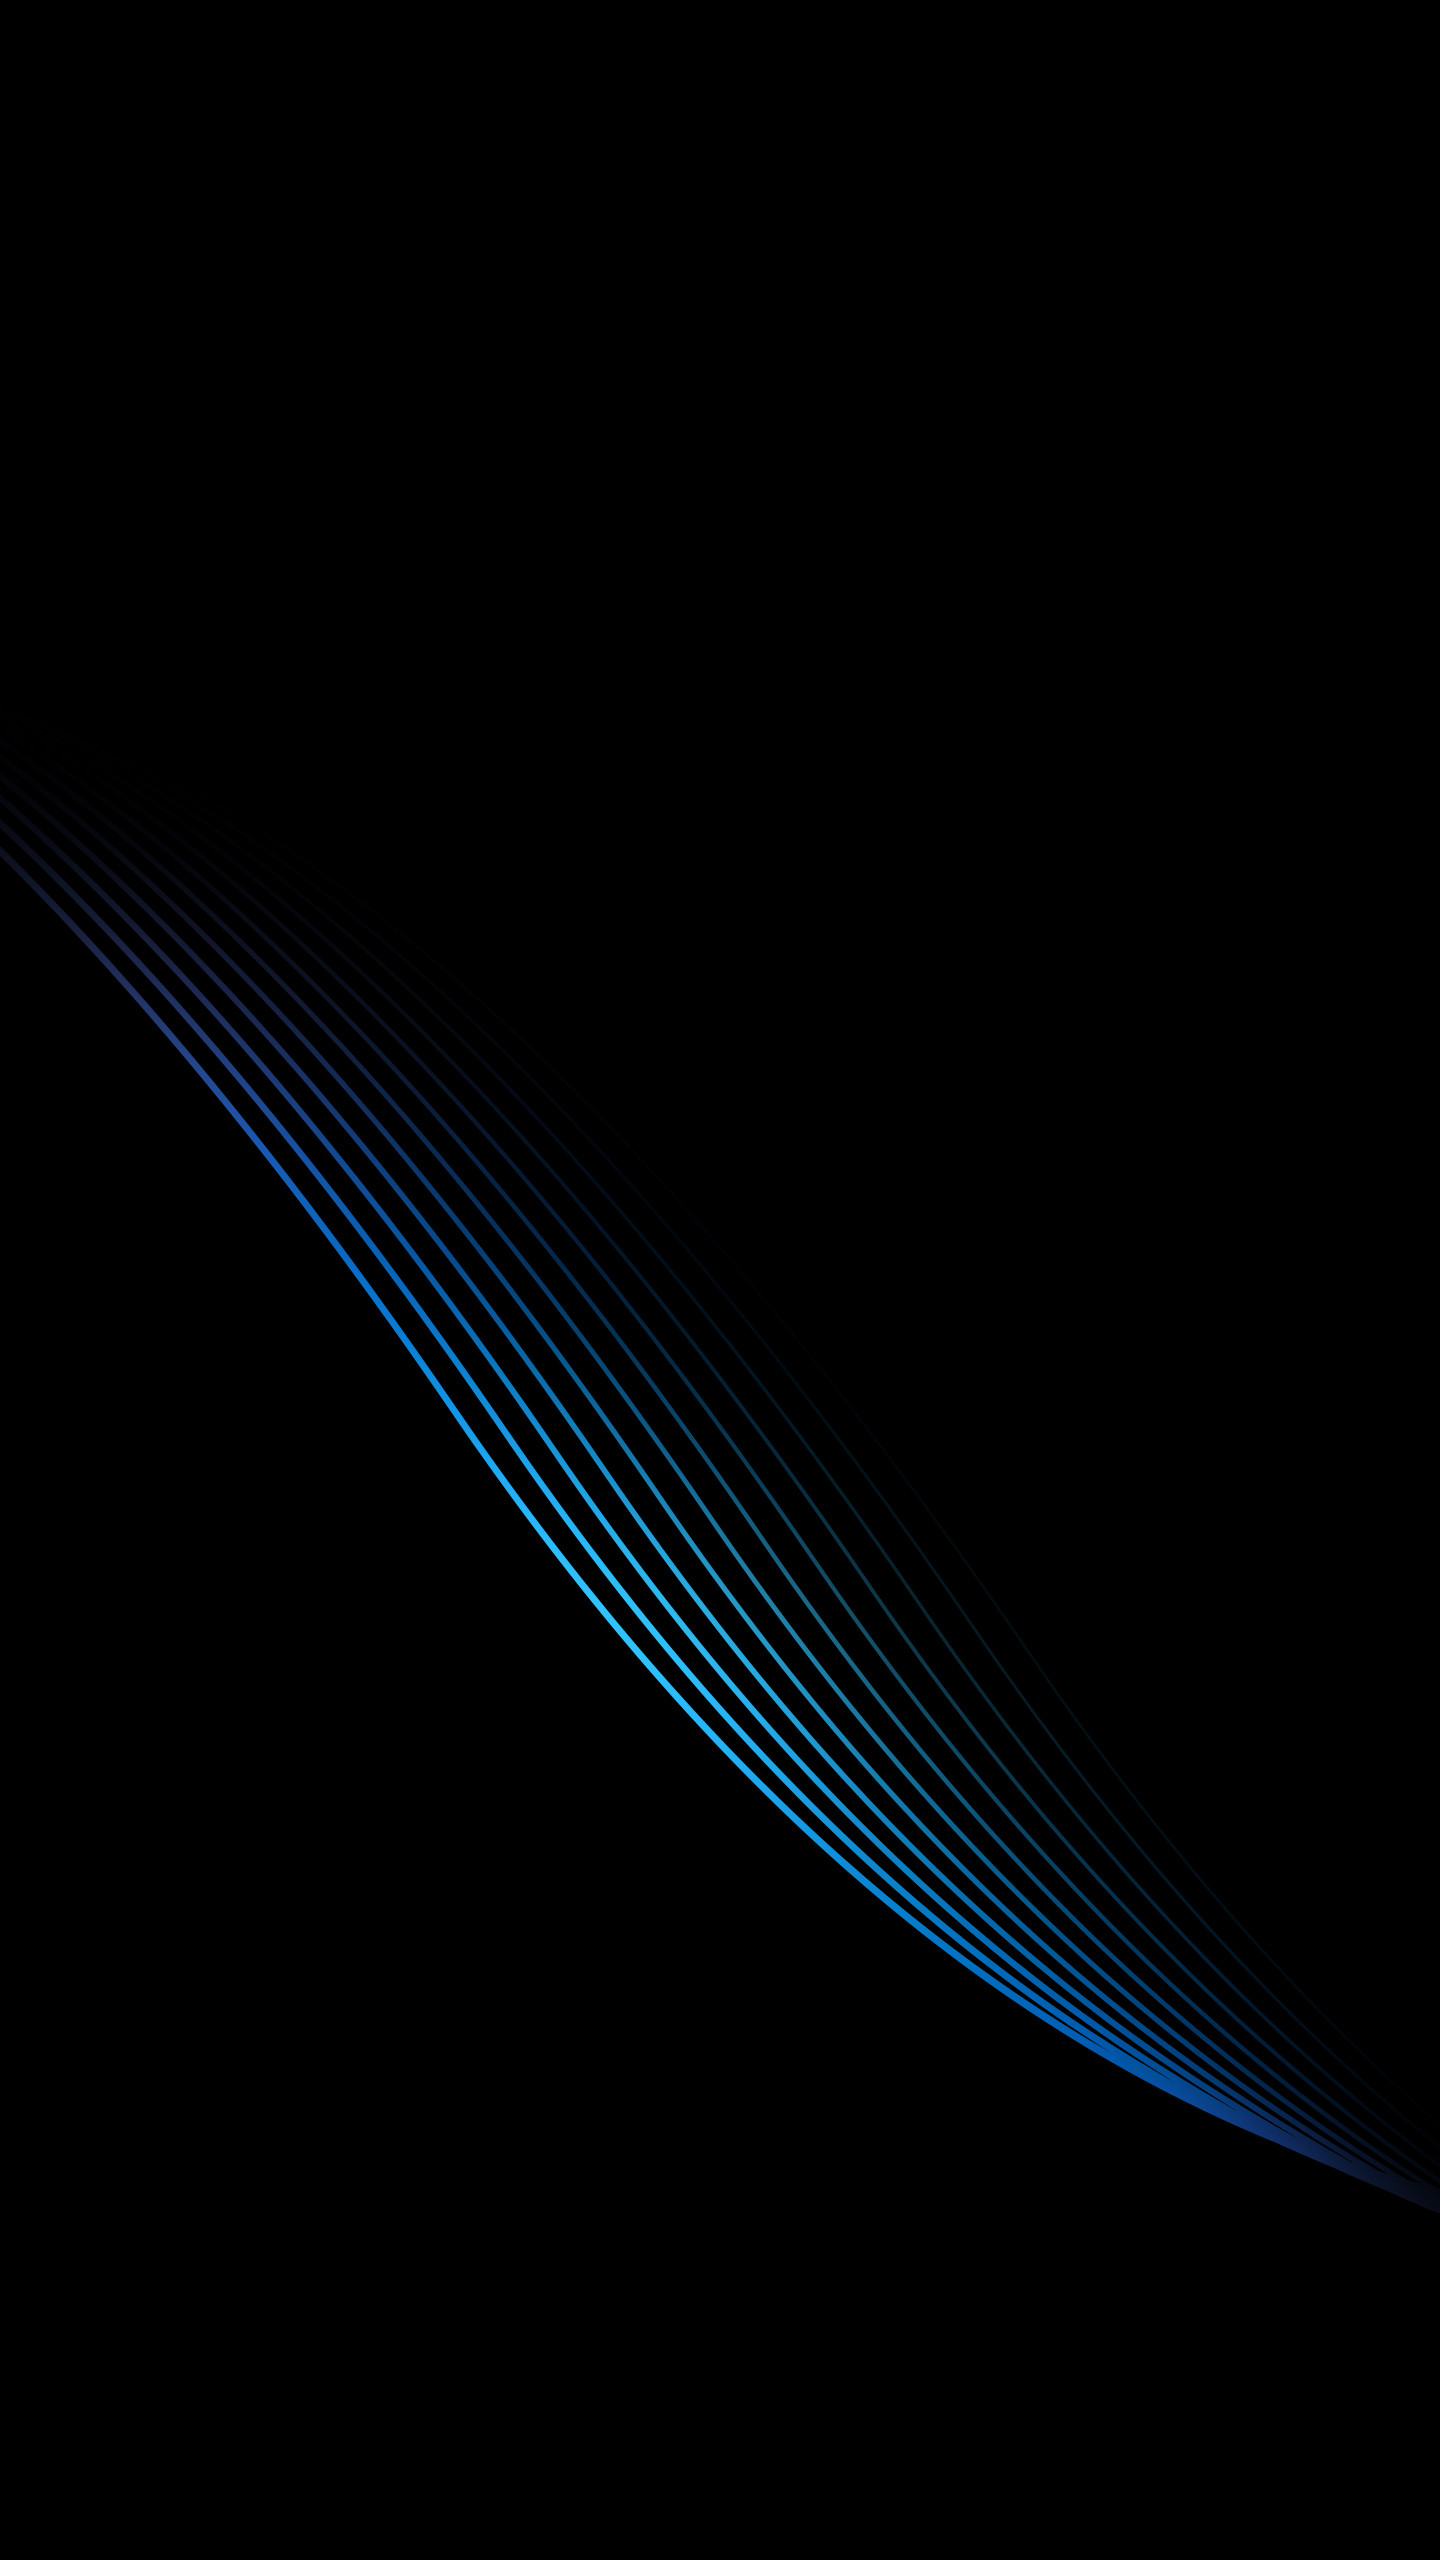 Quad Hd Phone Wallpapers 64 Images